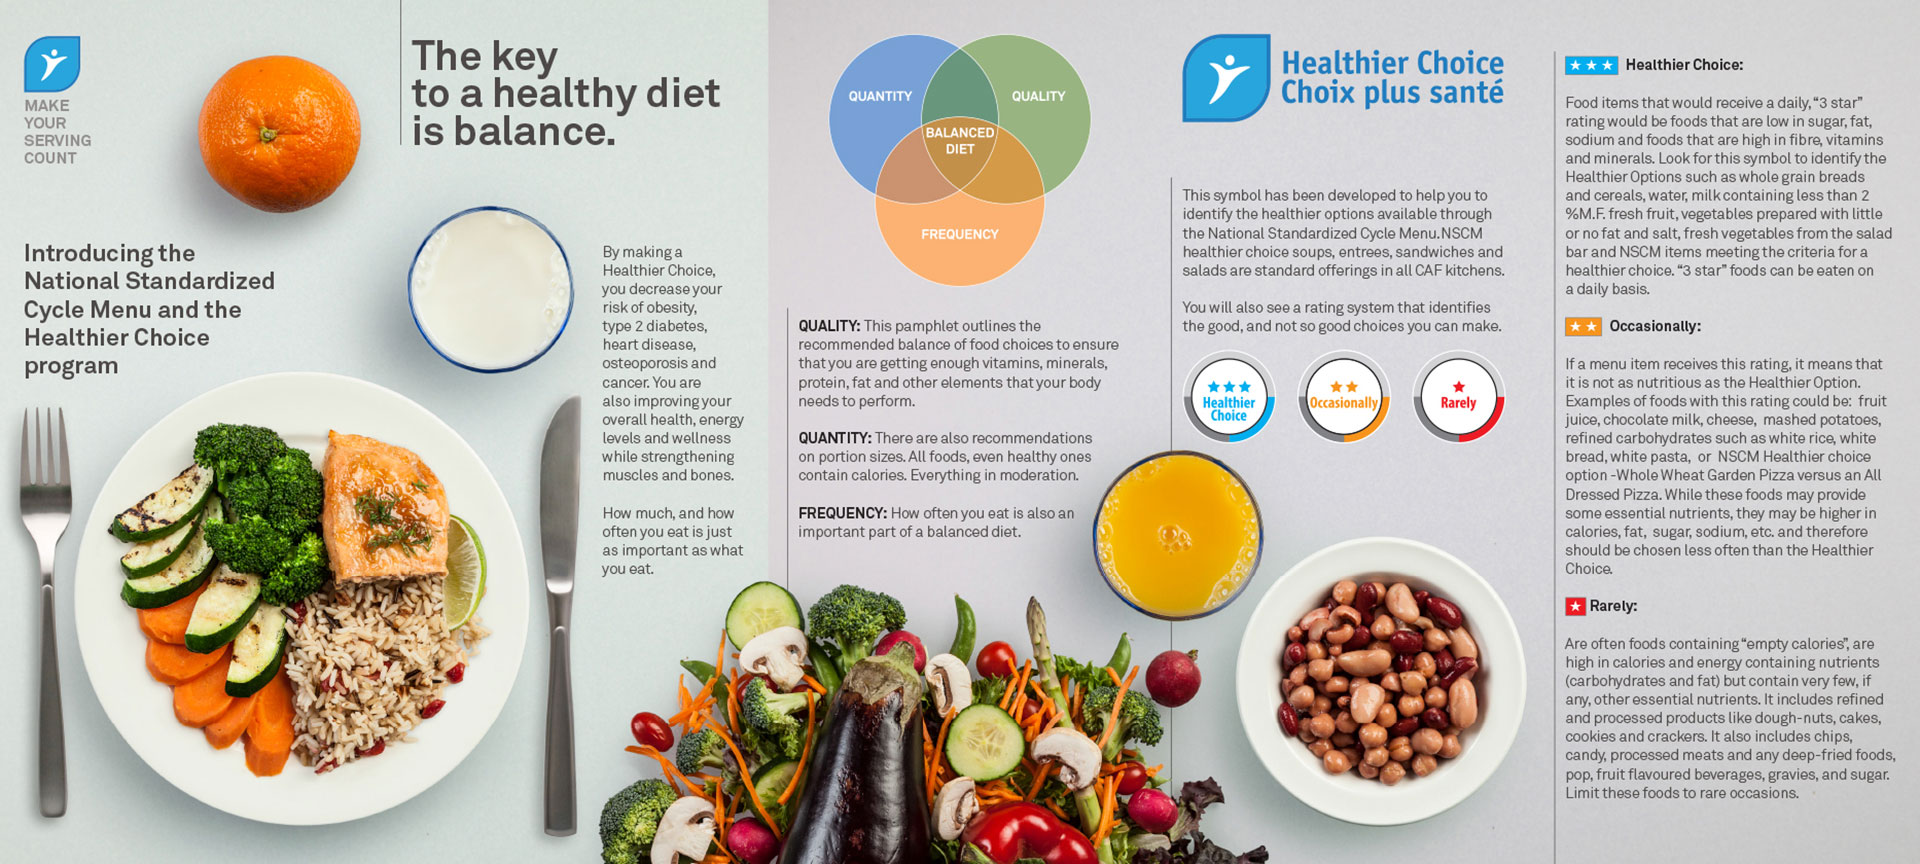 DND_Healthier Choice Brochure_2016-front